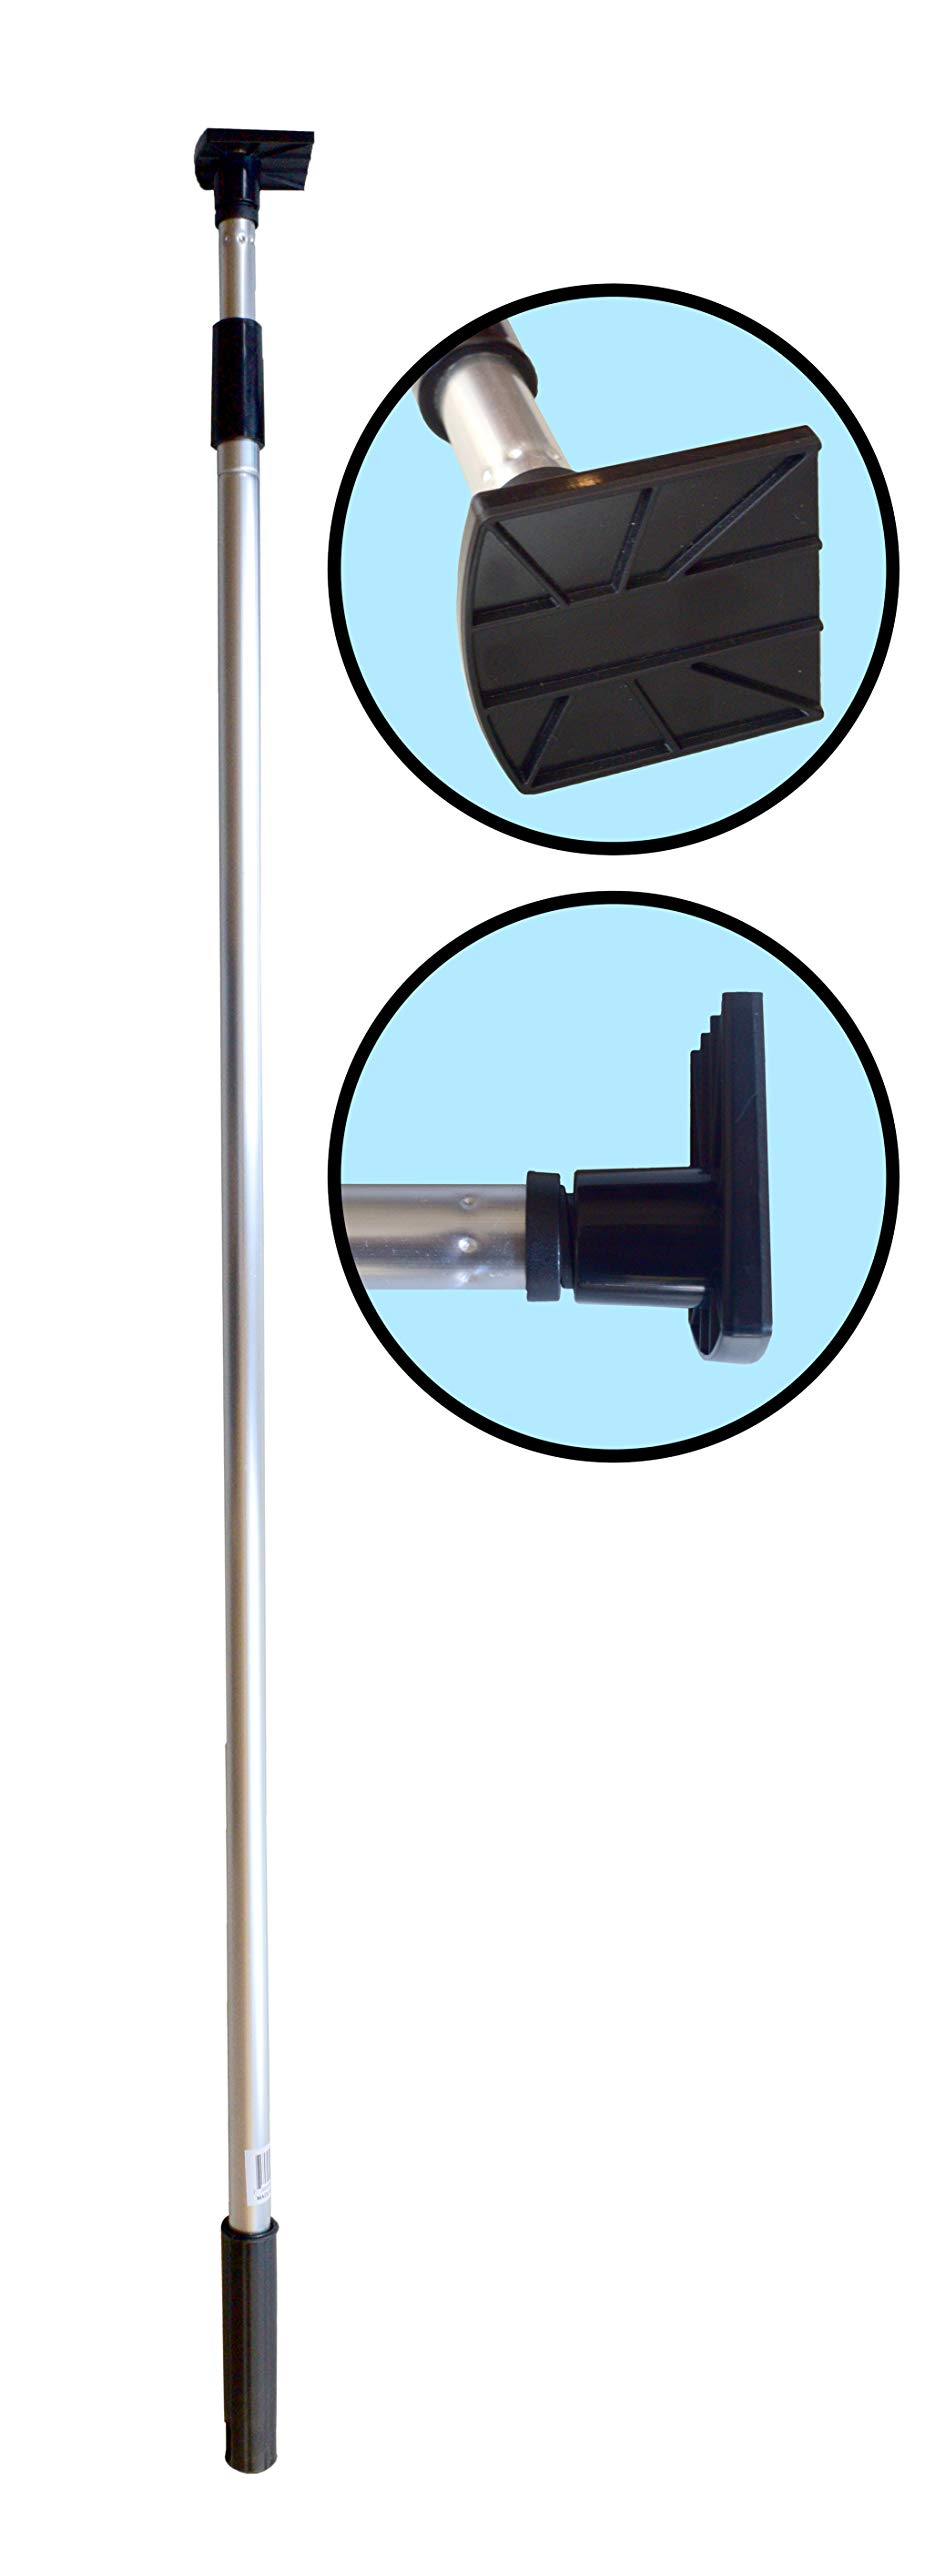 Gutter Hoe - Gutter Cleaning Tool. Telescopic Pole with attached Scraper Blade. by Unique Implements Online